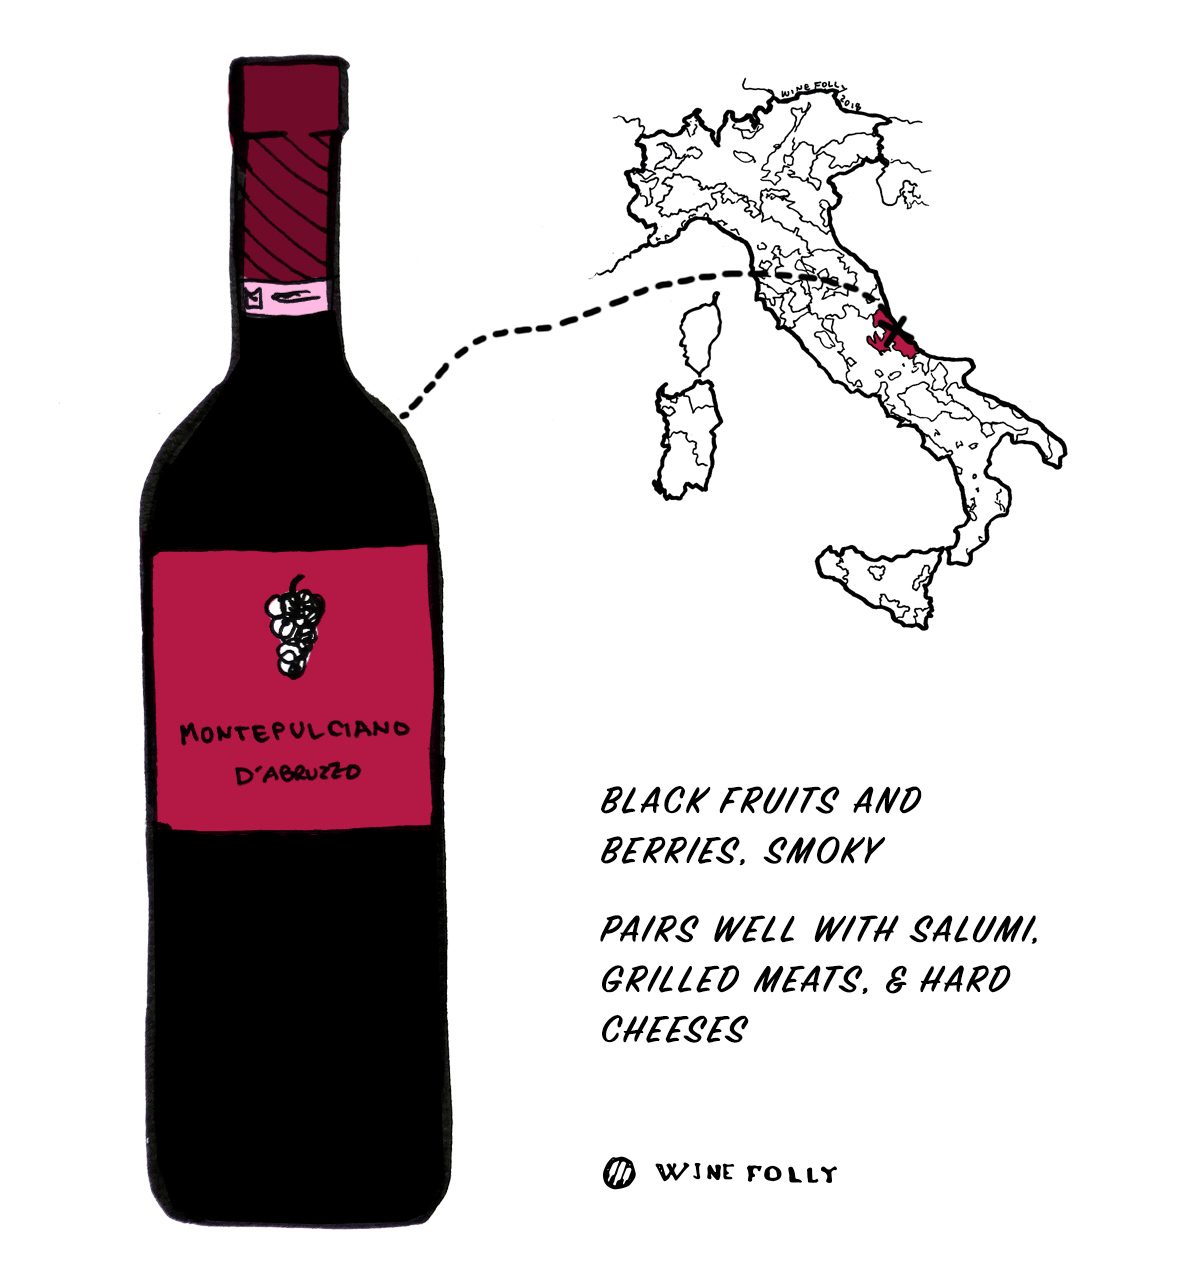 montepulciano-illustration-de-vin-de-raisin-winefolly